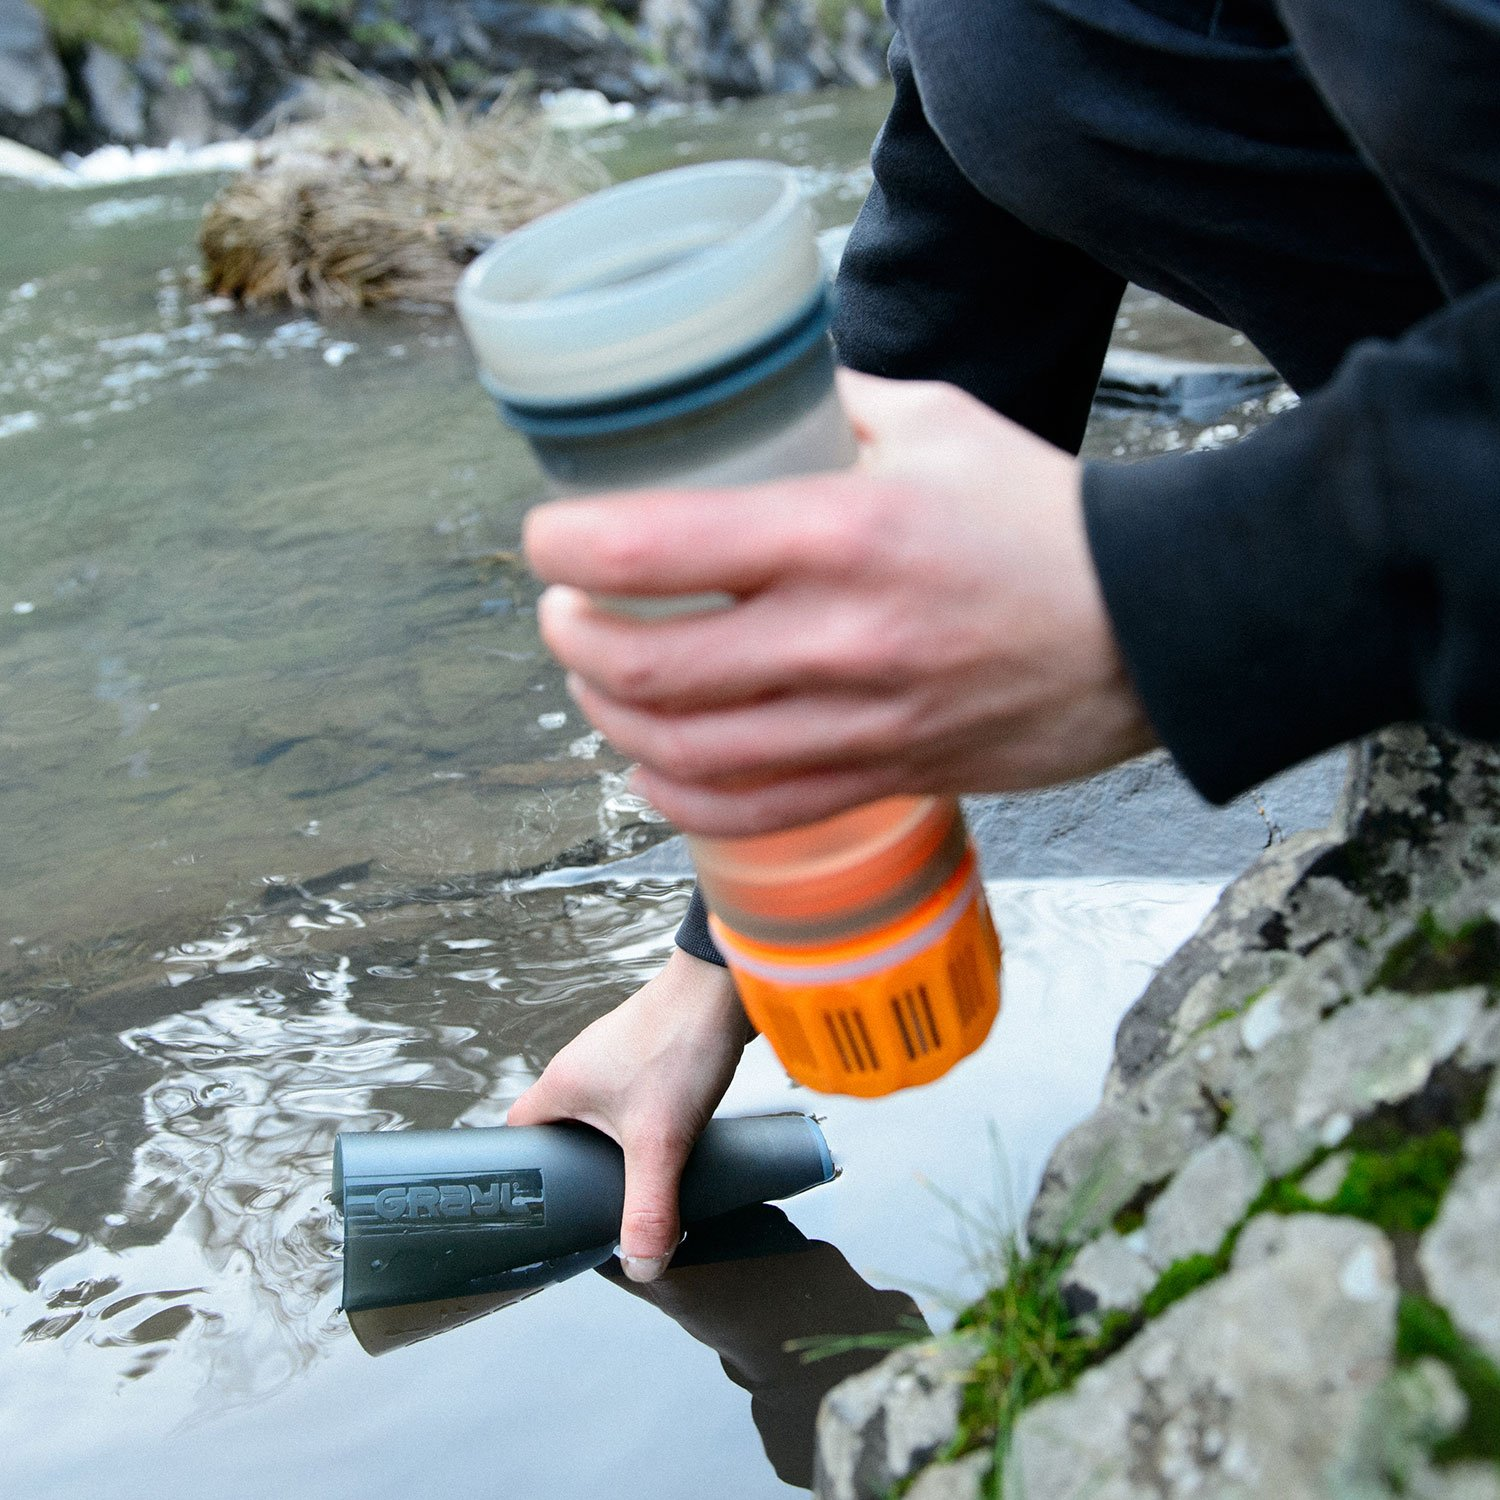 Reviews of TOP 5 Best Camp Water Filters in 2021